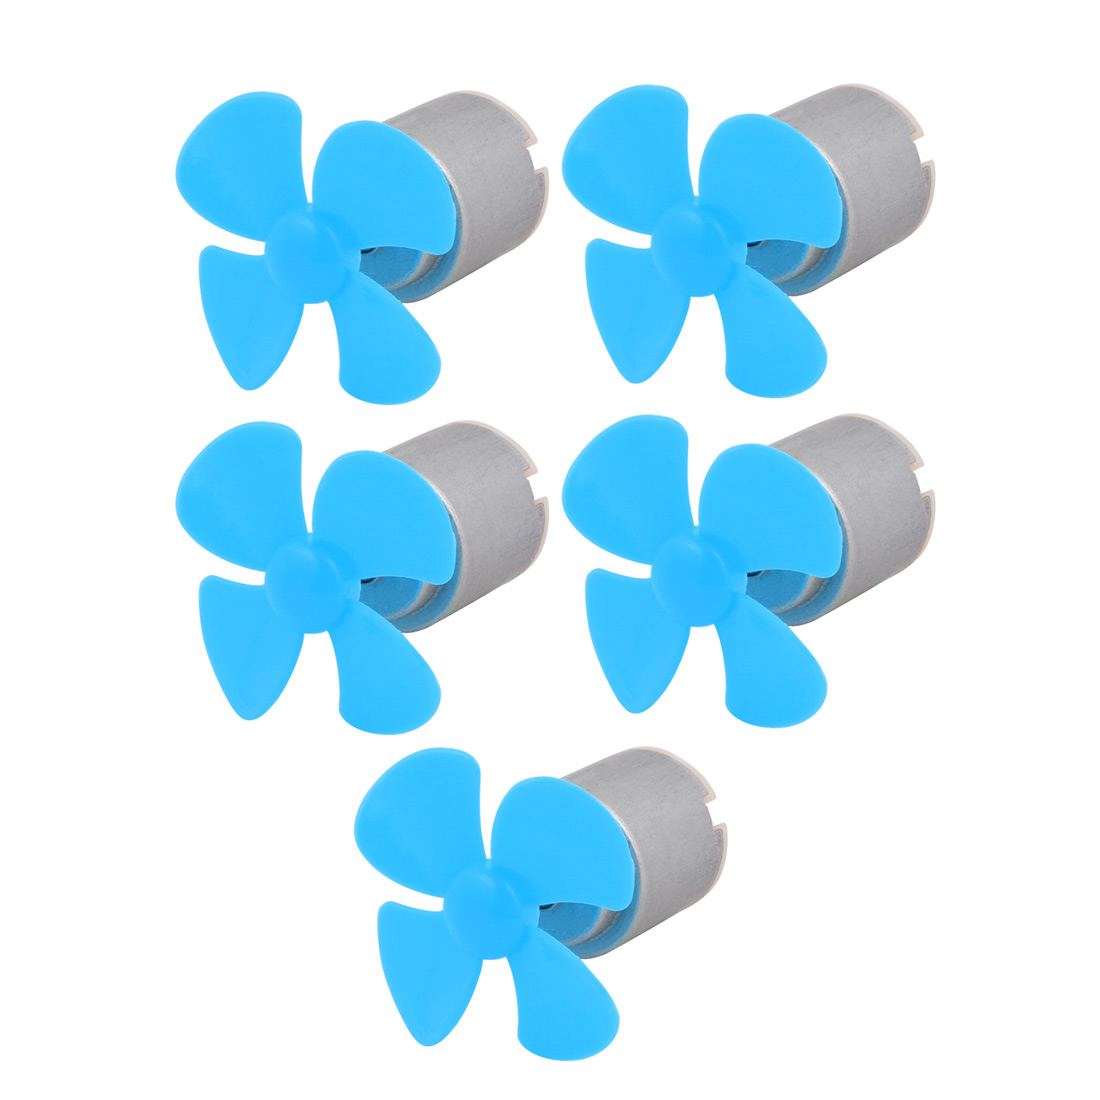 5Pcs DC 3V 0.13A 17000RPM Large Torque Motor 4-Vane 40mm Dia Propeller Blue for RC Model